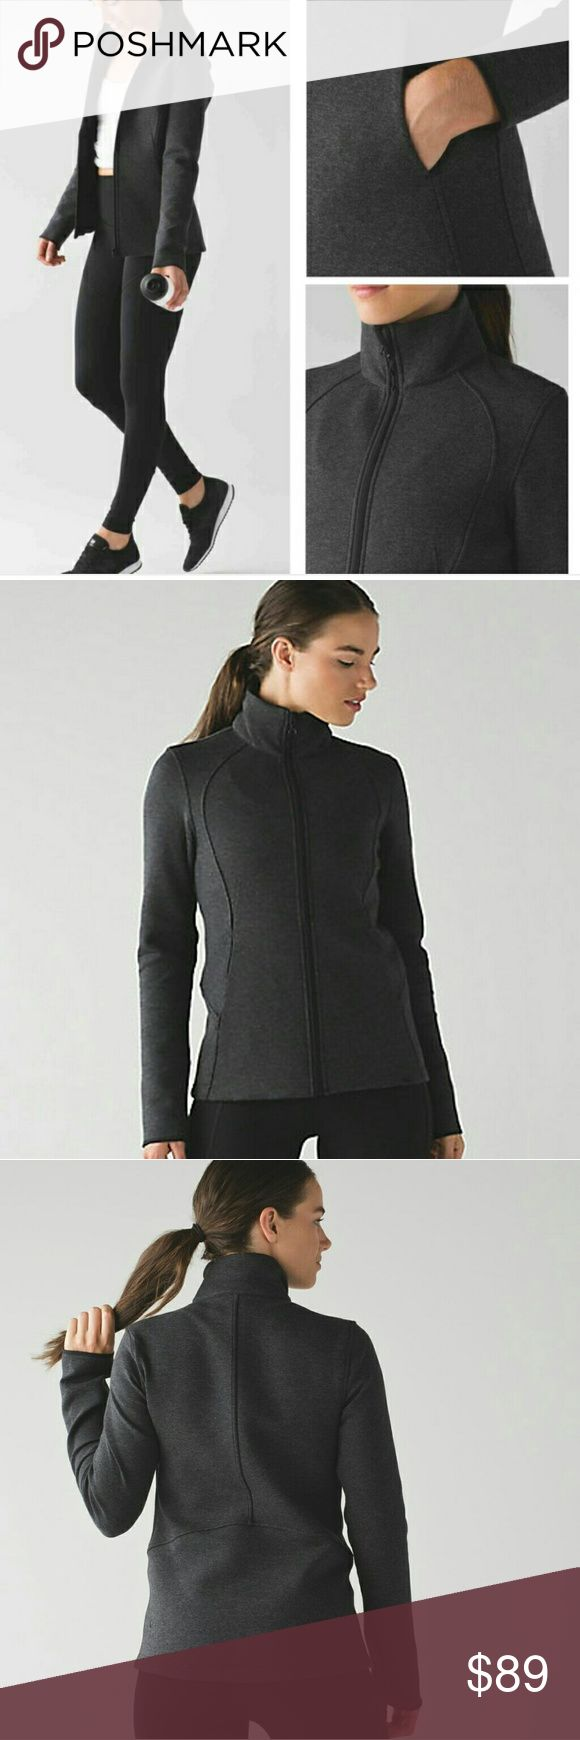 Lululemon Insculpt Jacket sz 6 Brand new without tags. Lululemon Insculpt jacket in a size 6. Never worn, the sleeve are too long on me.   Flash was on my camera so jacket appears lighter in color than it actually is...more like stock photos. lululemon athletica Jackets & Coats